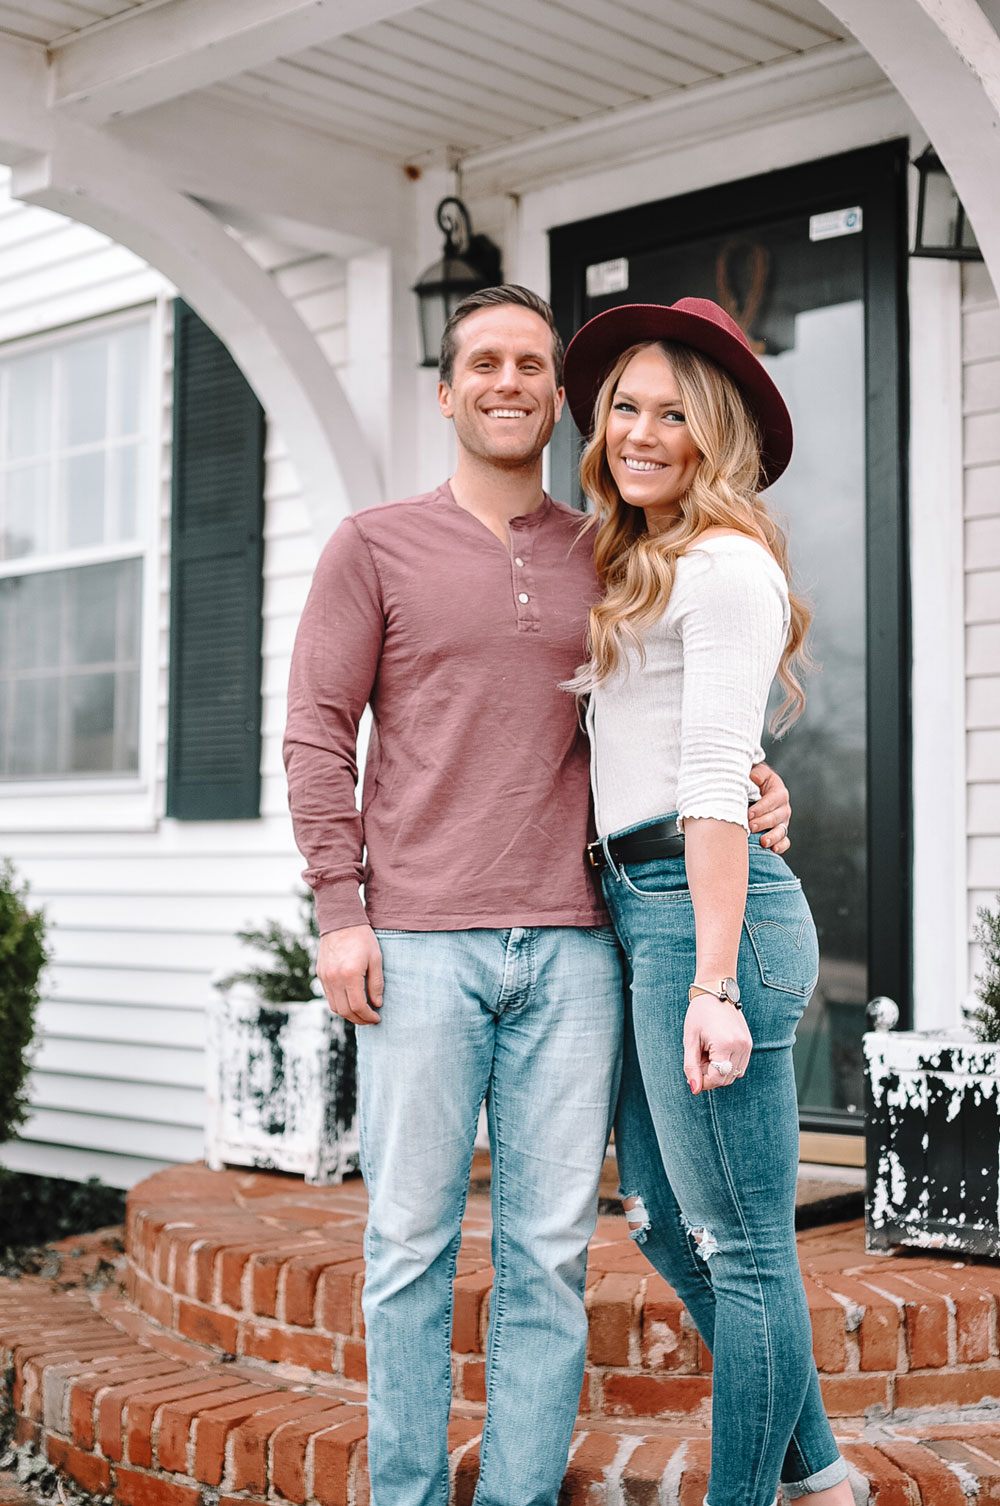 Oklahoma blogger Amanda Martin shares 14 things to look for in a husband in honor of Valentine's Day